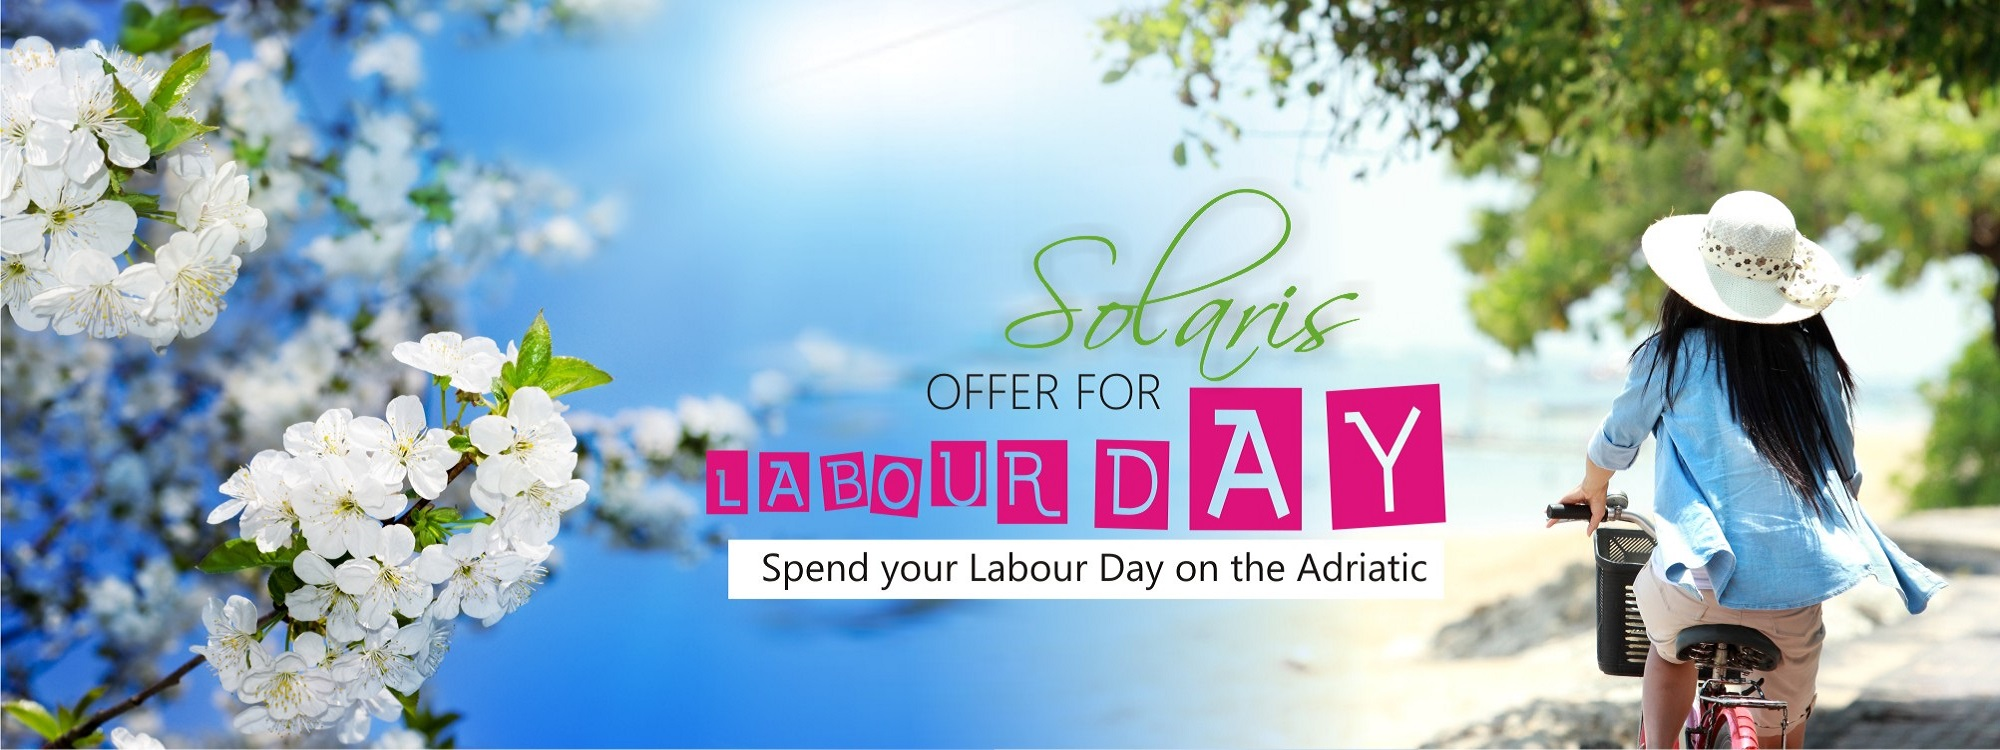 Solaris_offer_for_labour_day_on_the_adriatic_vacation_dalmatia